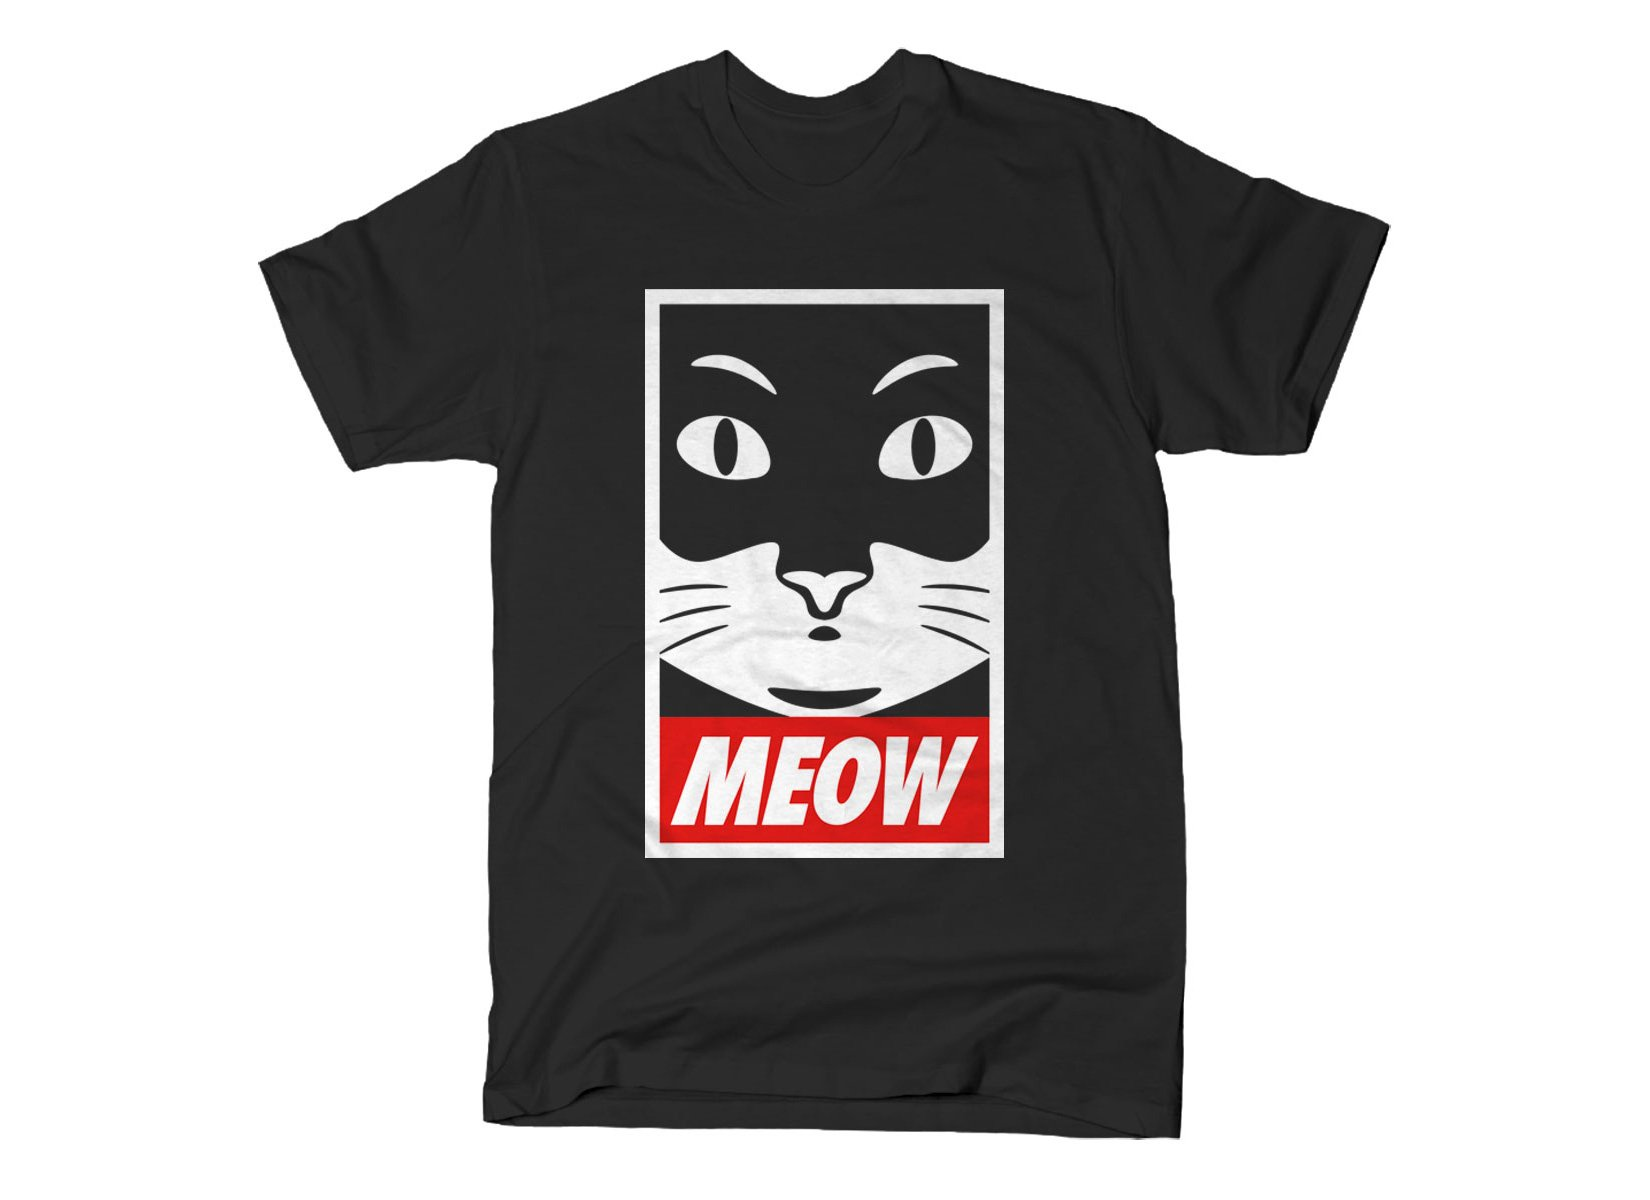 Meow on Mens T-Shirt